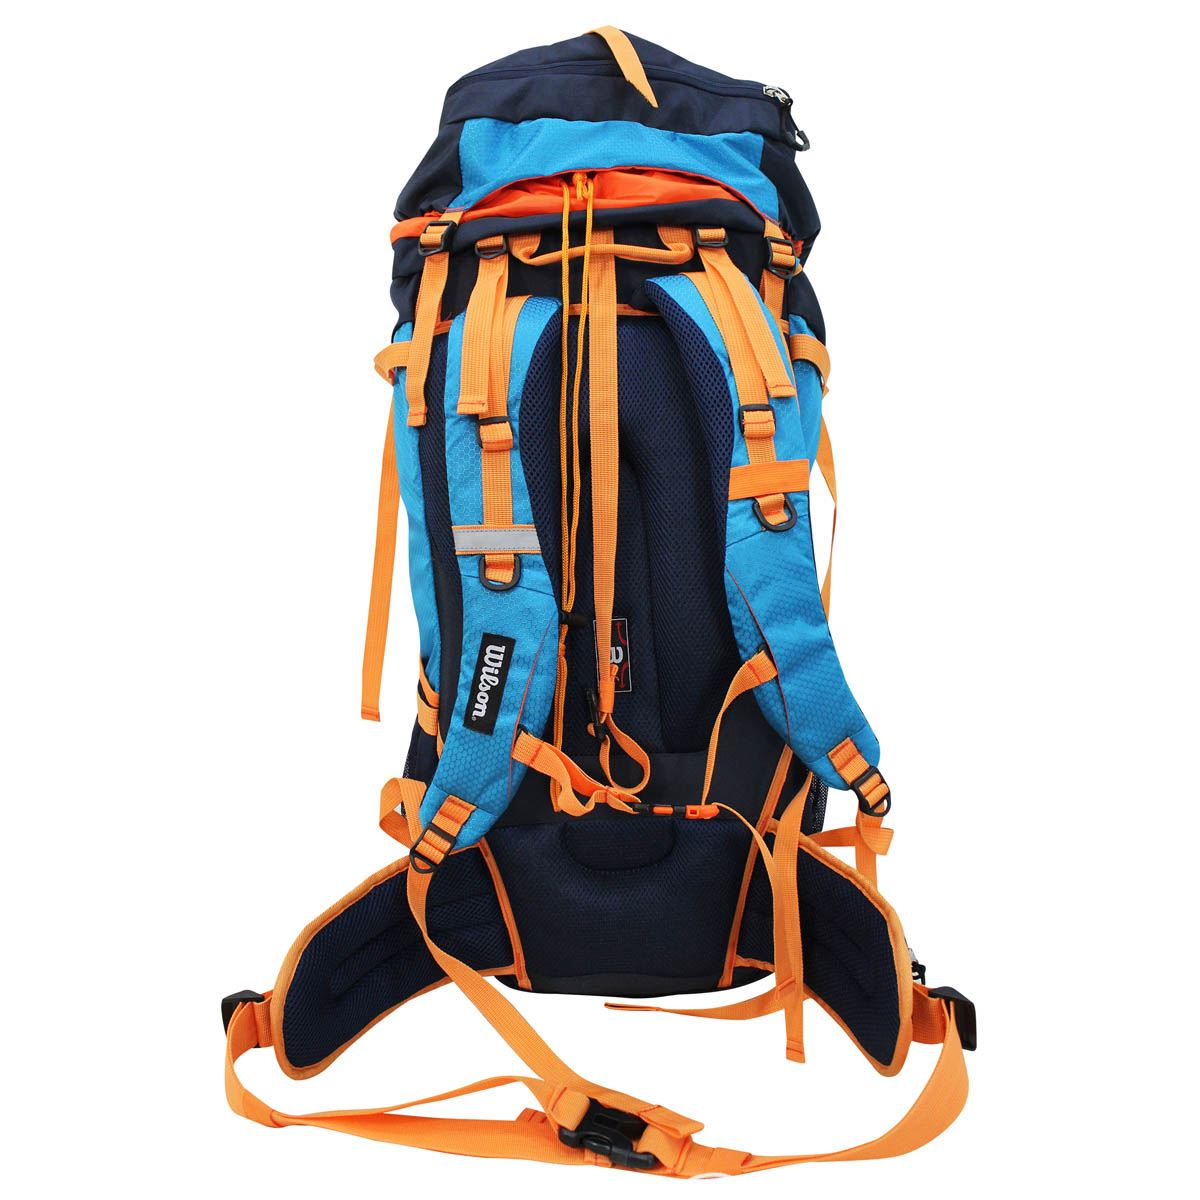 Camping bag ie-15104 blue/orange  - Sanborns